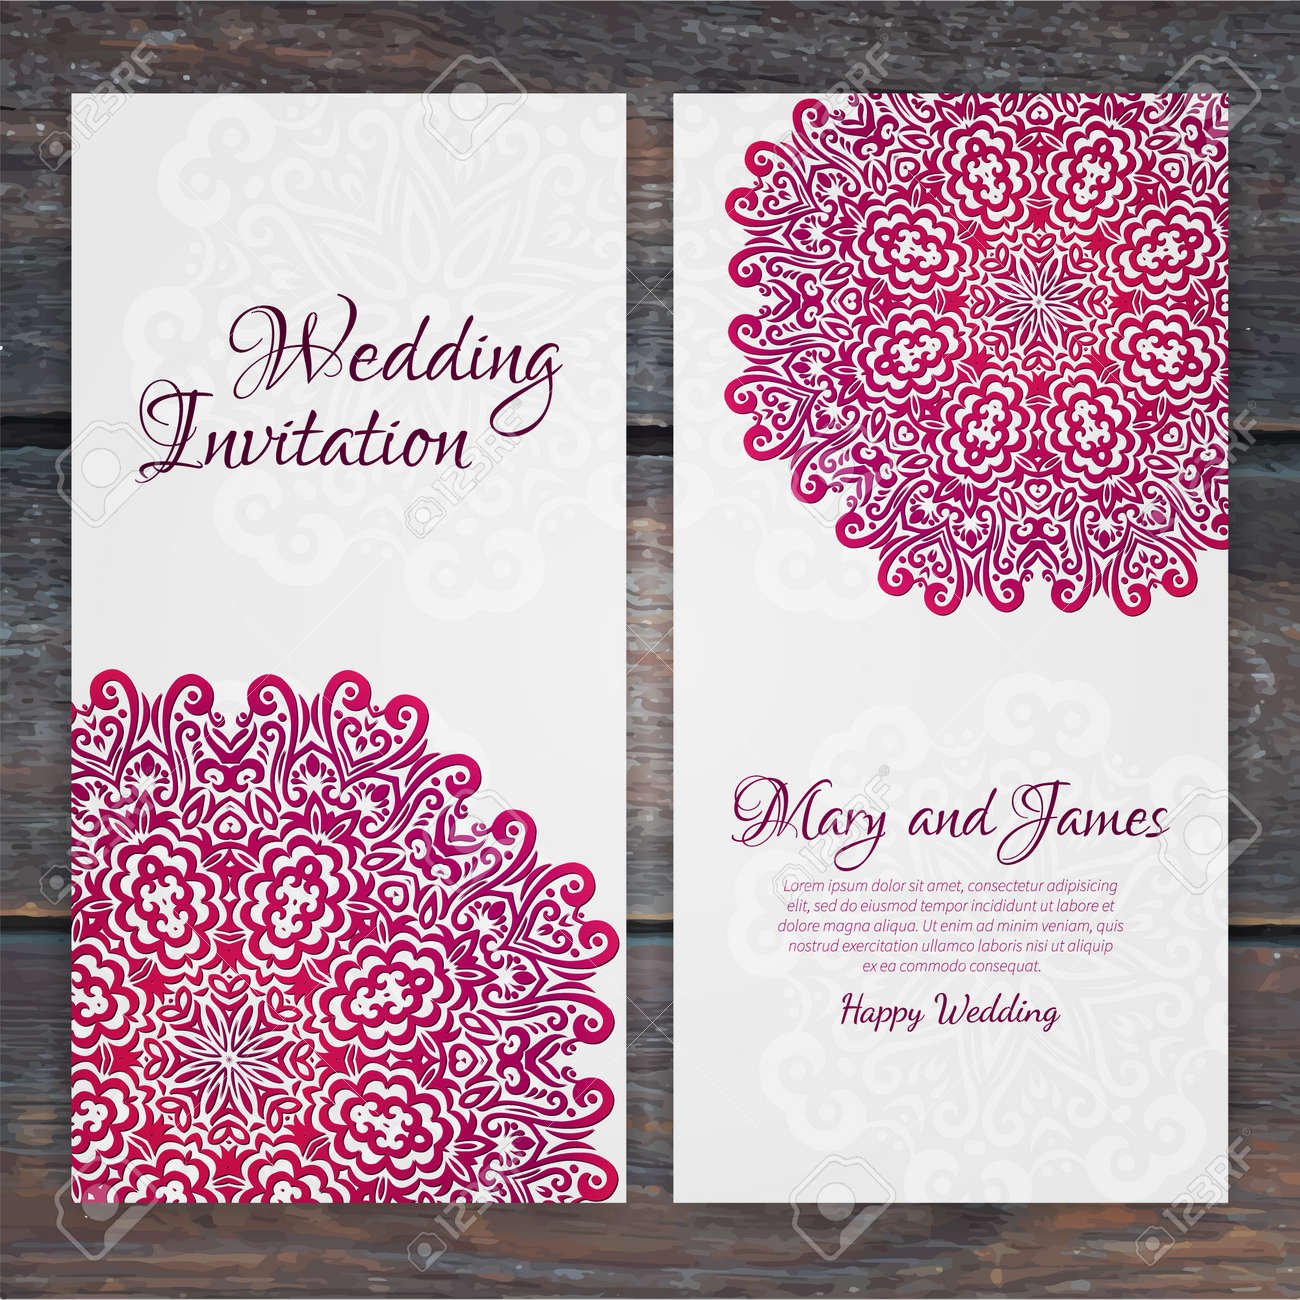 Lacy vector wedding card template romantic vintage wedding lacy vector wedding card template romantic vintage wedding invitation abstract circle floral ornament stopboris Images